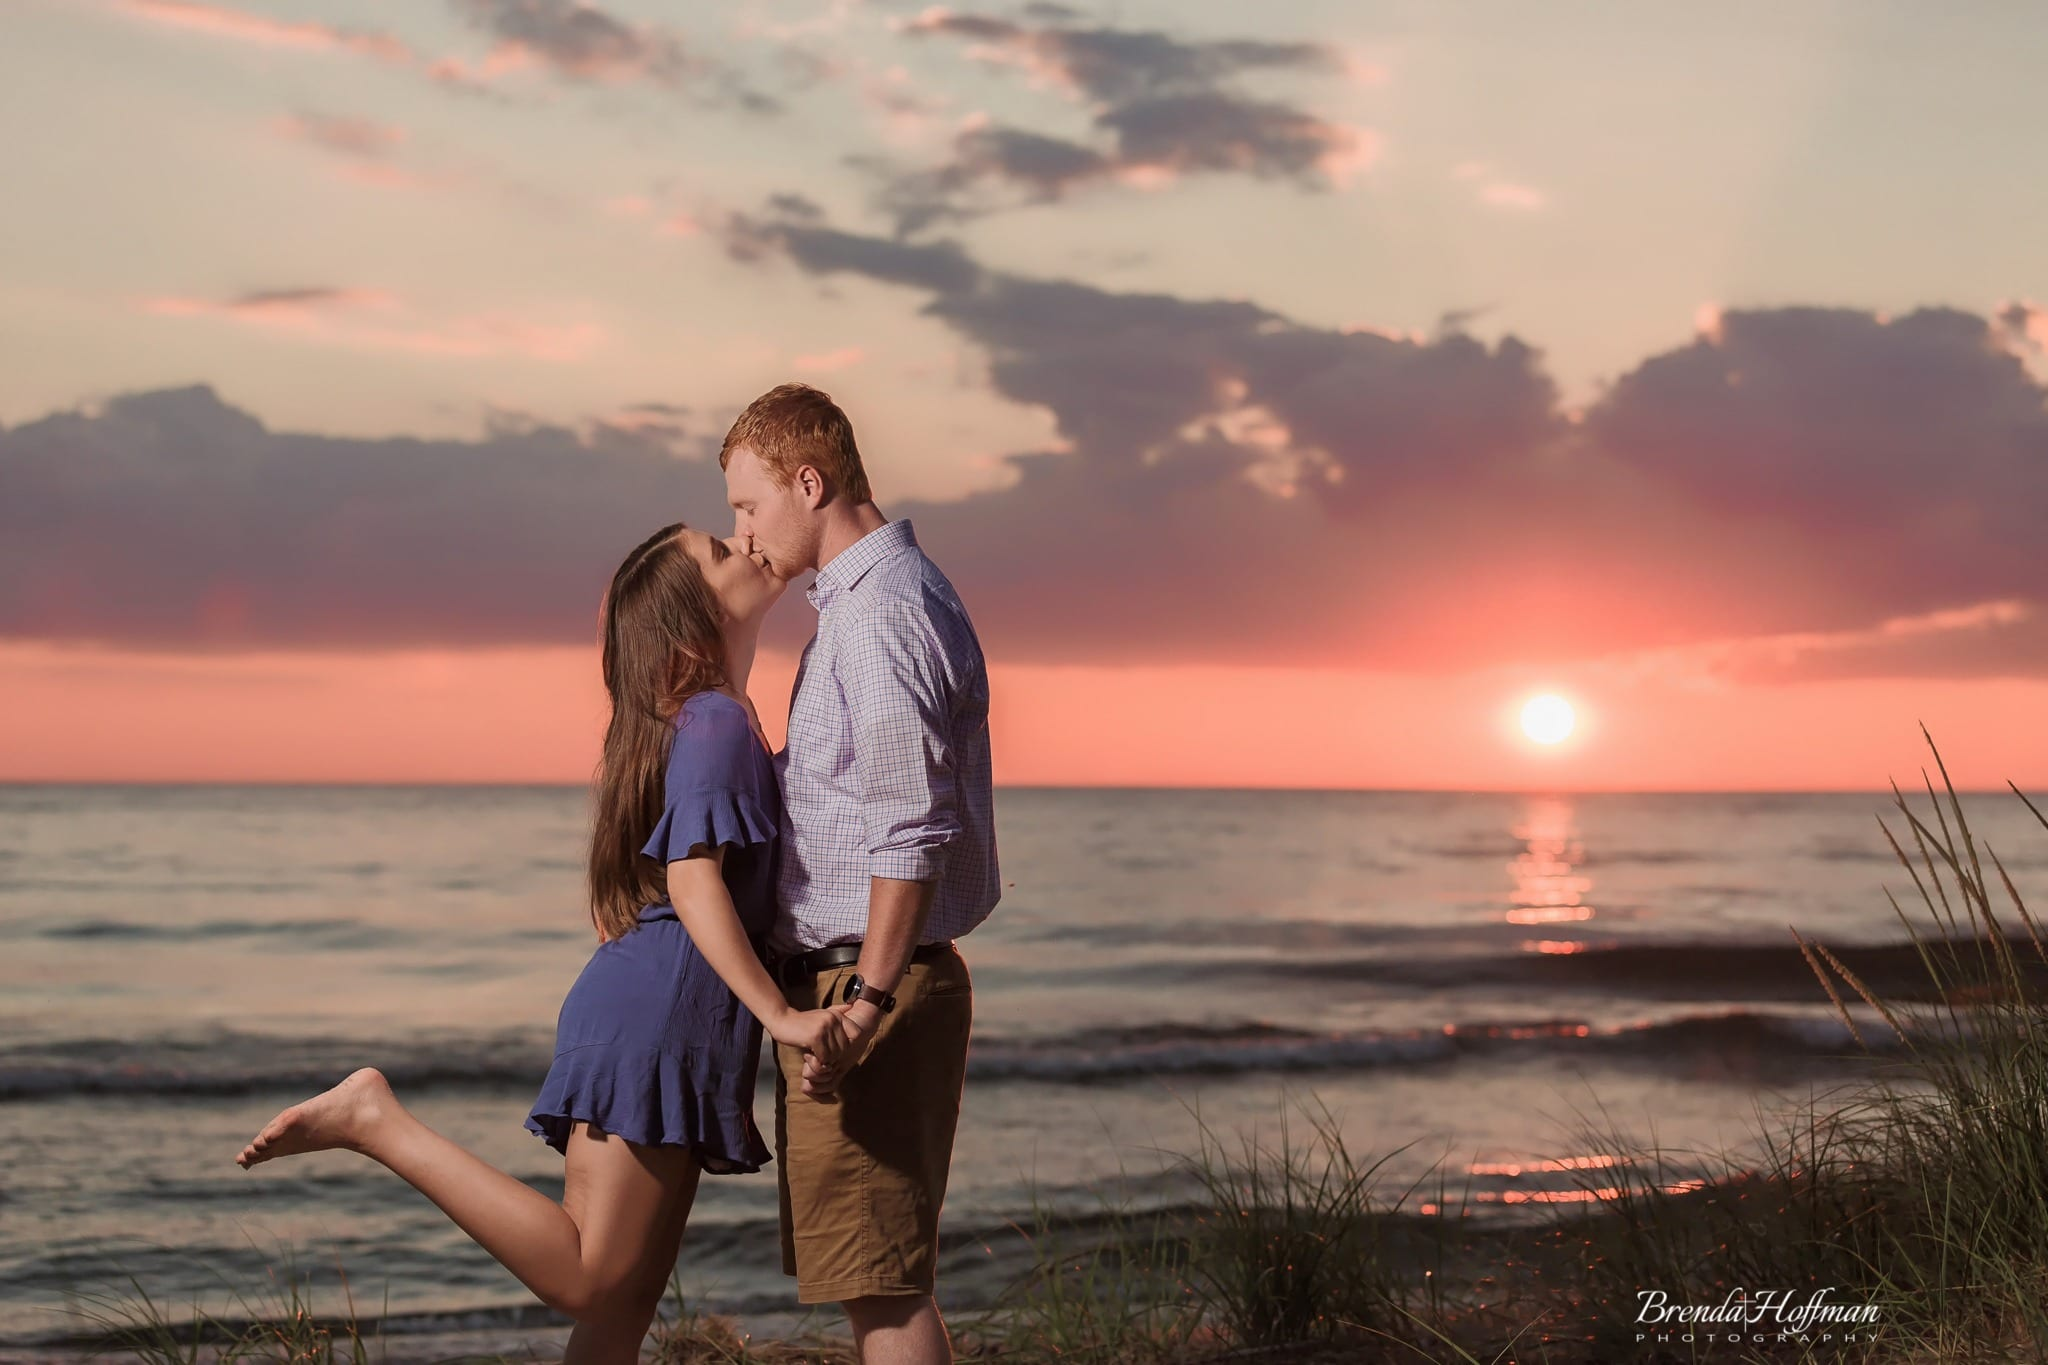 Beach-Sunset-Engagement-Session (13 of 14)